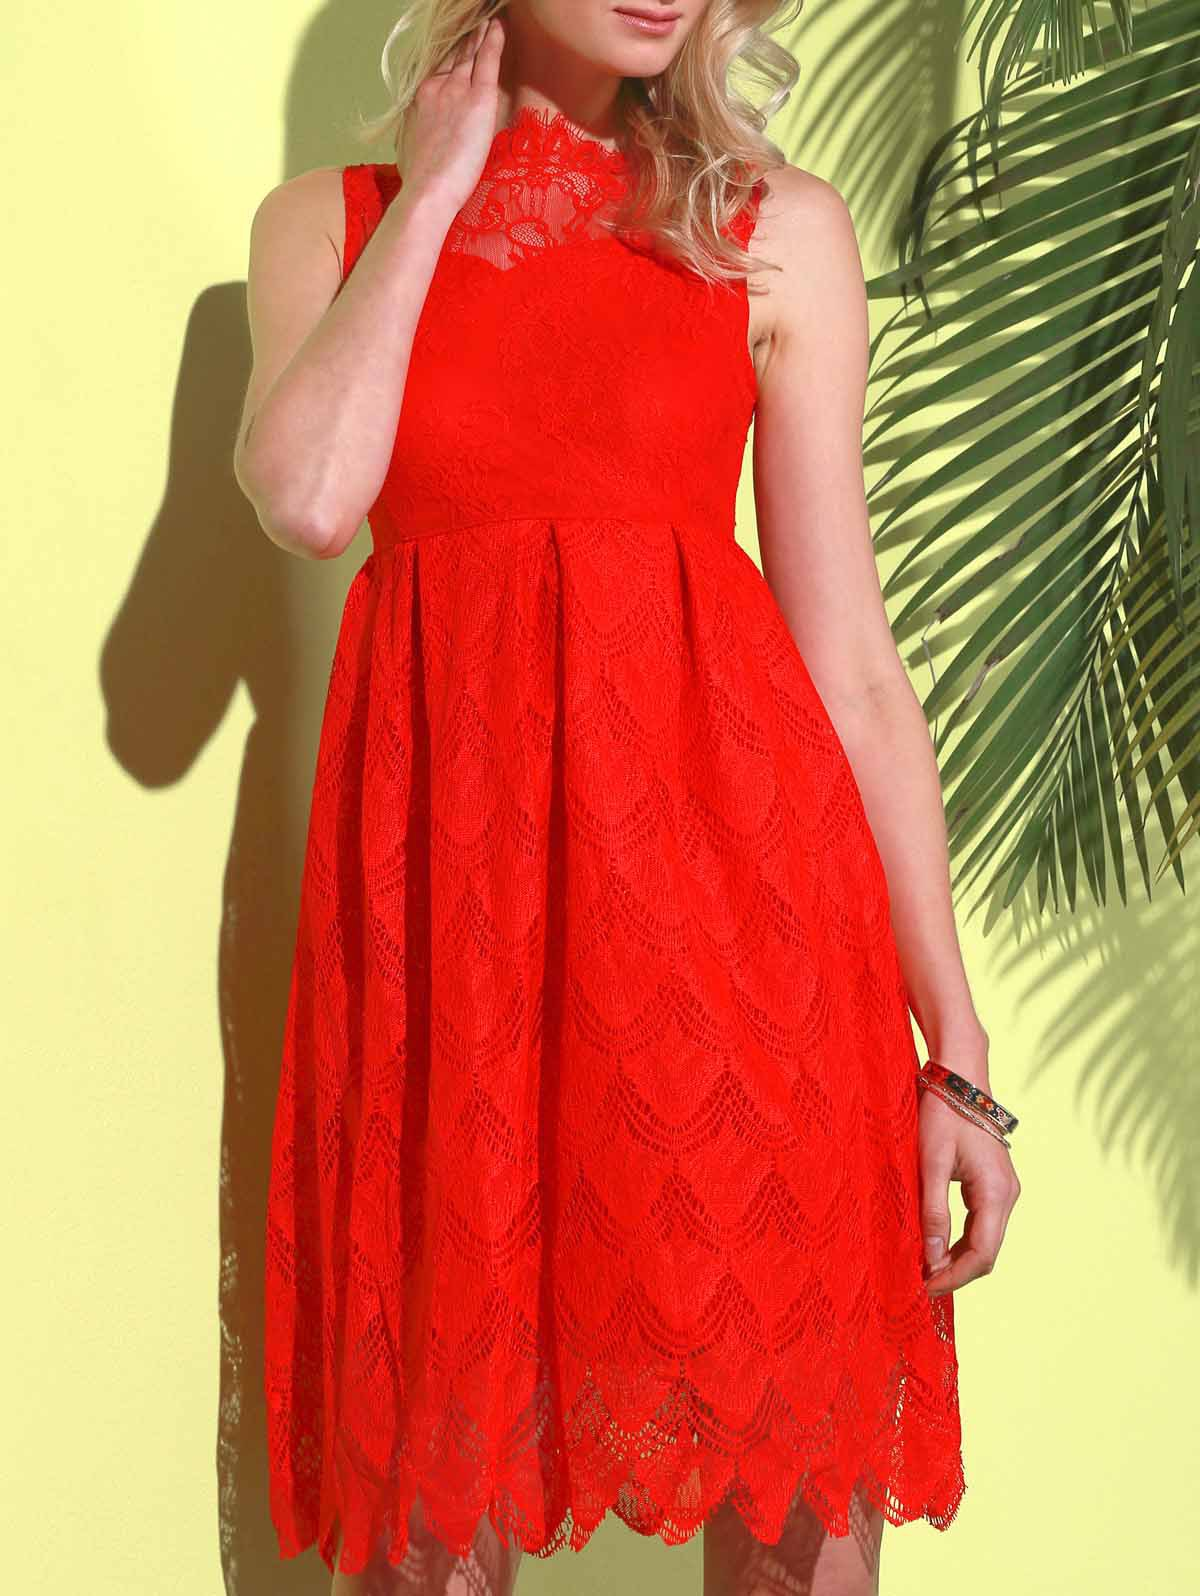 Stylish Round Neck Sleeveless Hollow Out Solid Color Lace Women's Dress - RED L